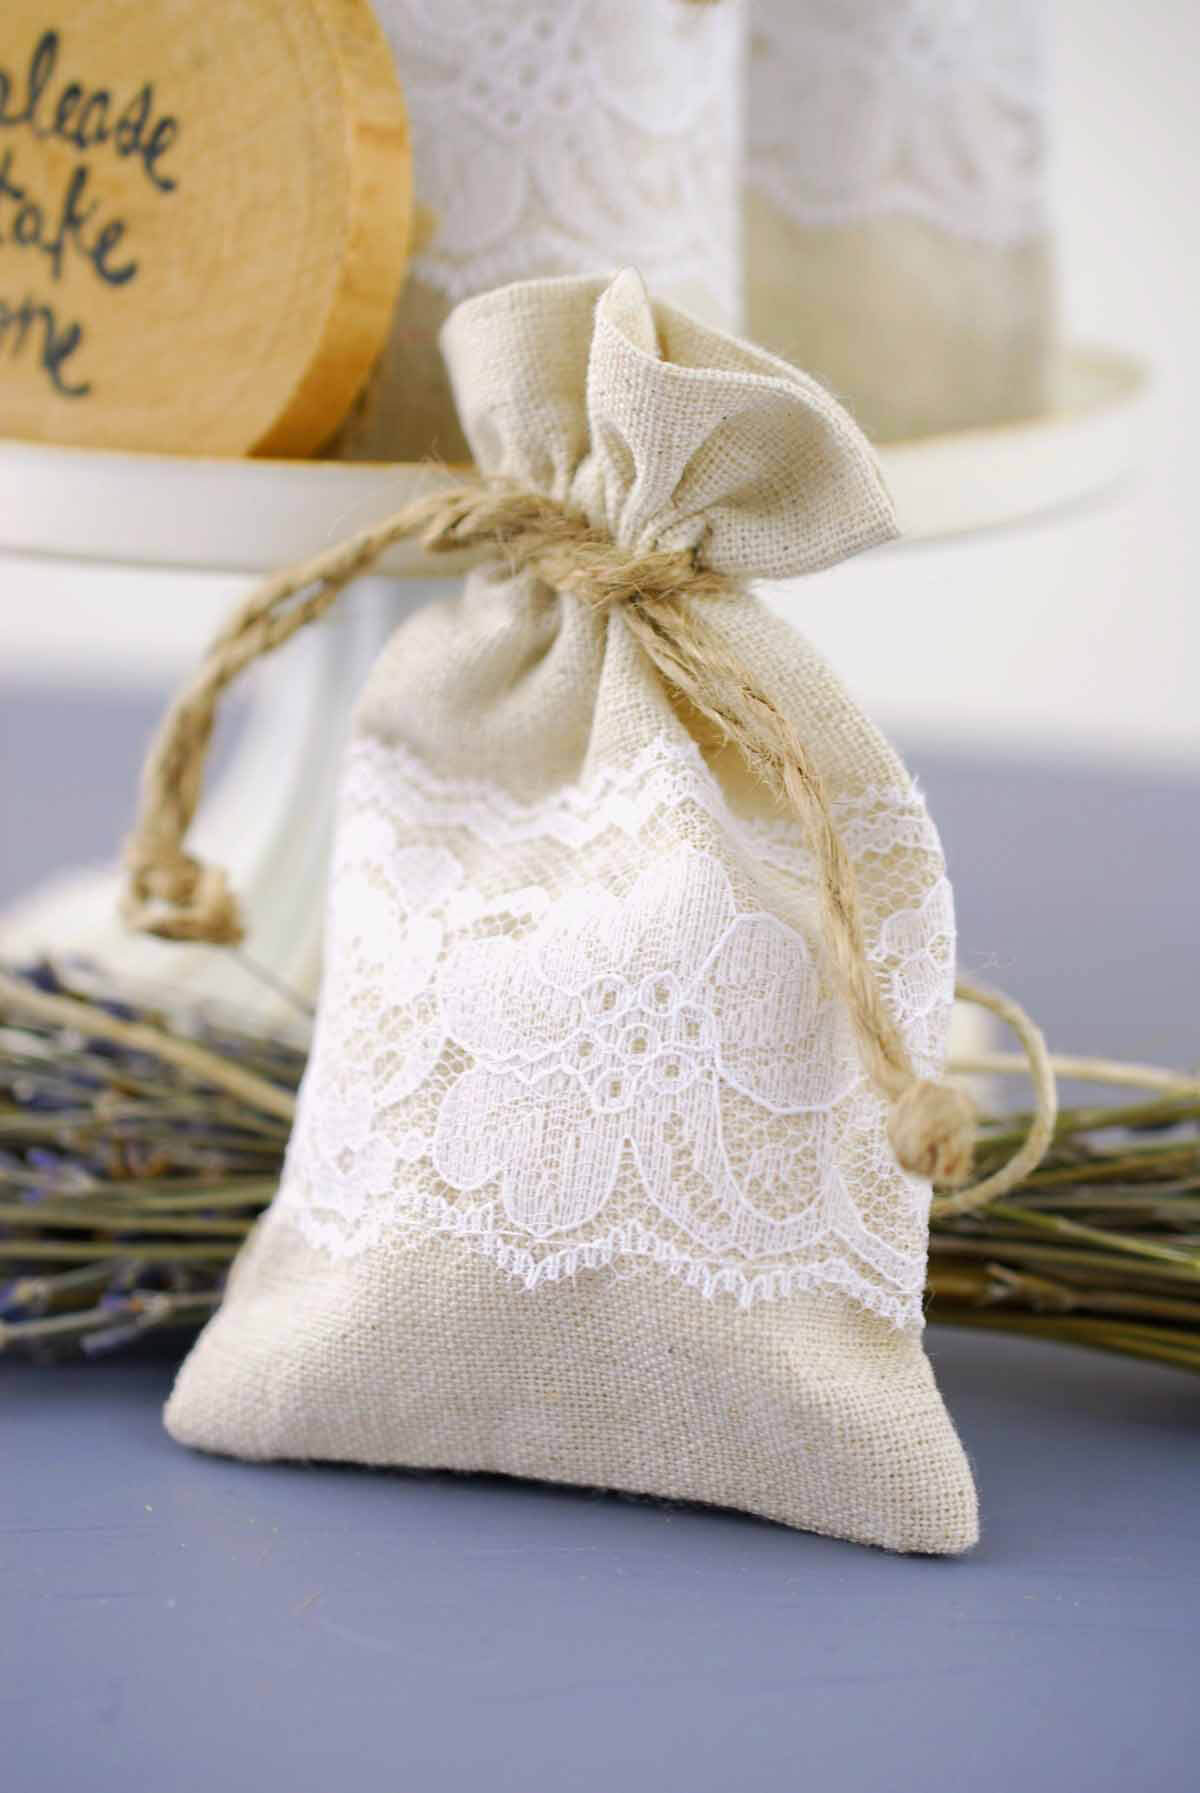 Wedding Favor Bags Lace : wood slabs tree slices wreath making supplies frames forms gifts ...